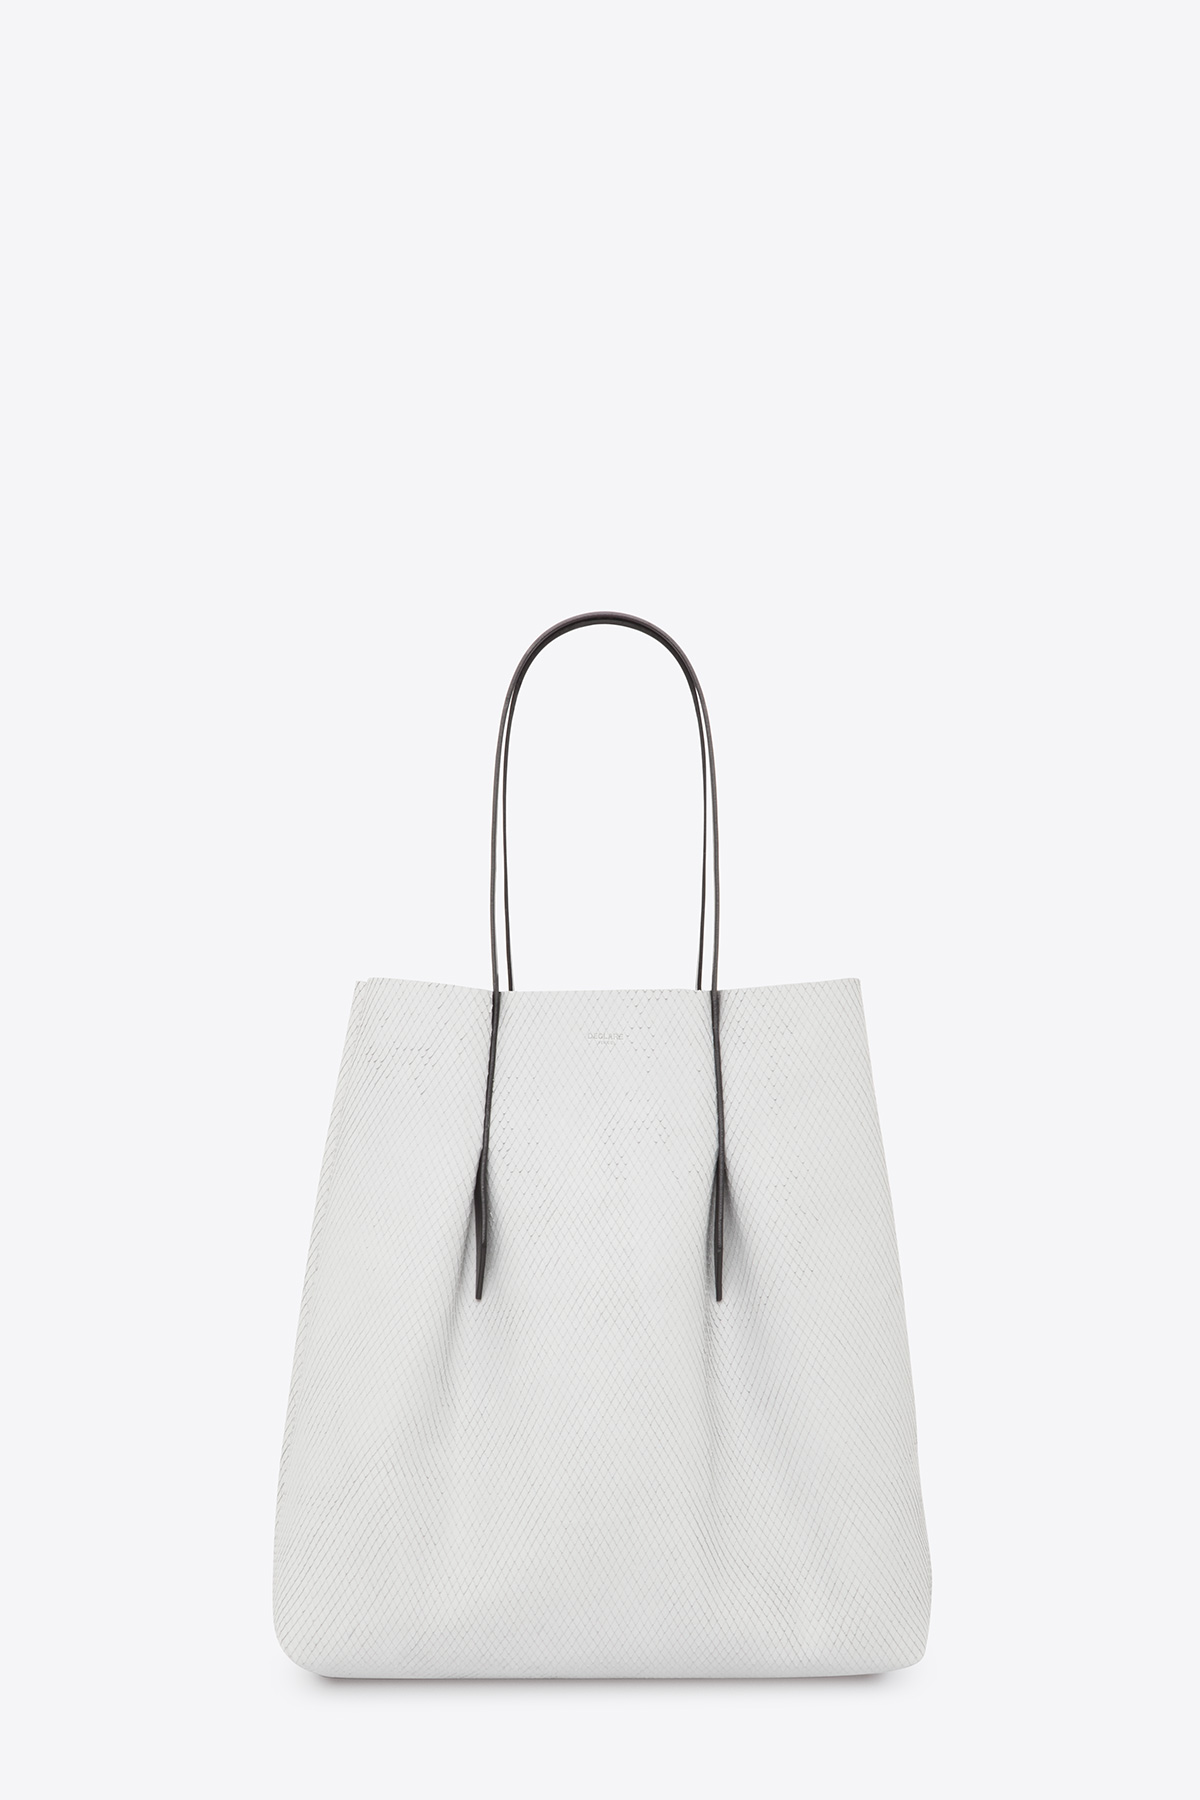 dclr006-shoppingbag-a22-backsnakefoggrey-front